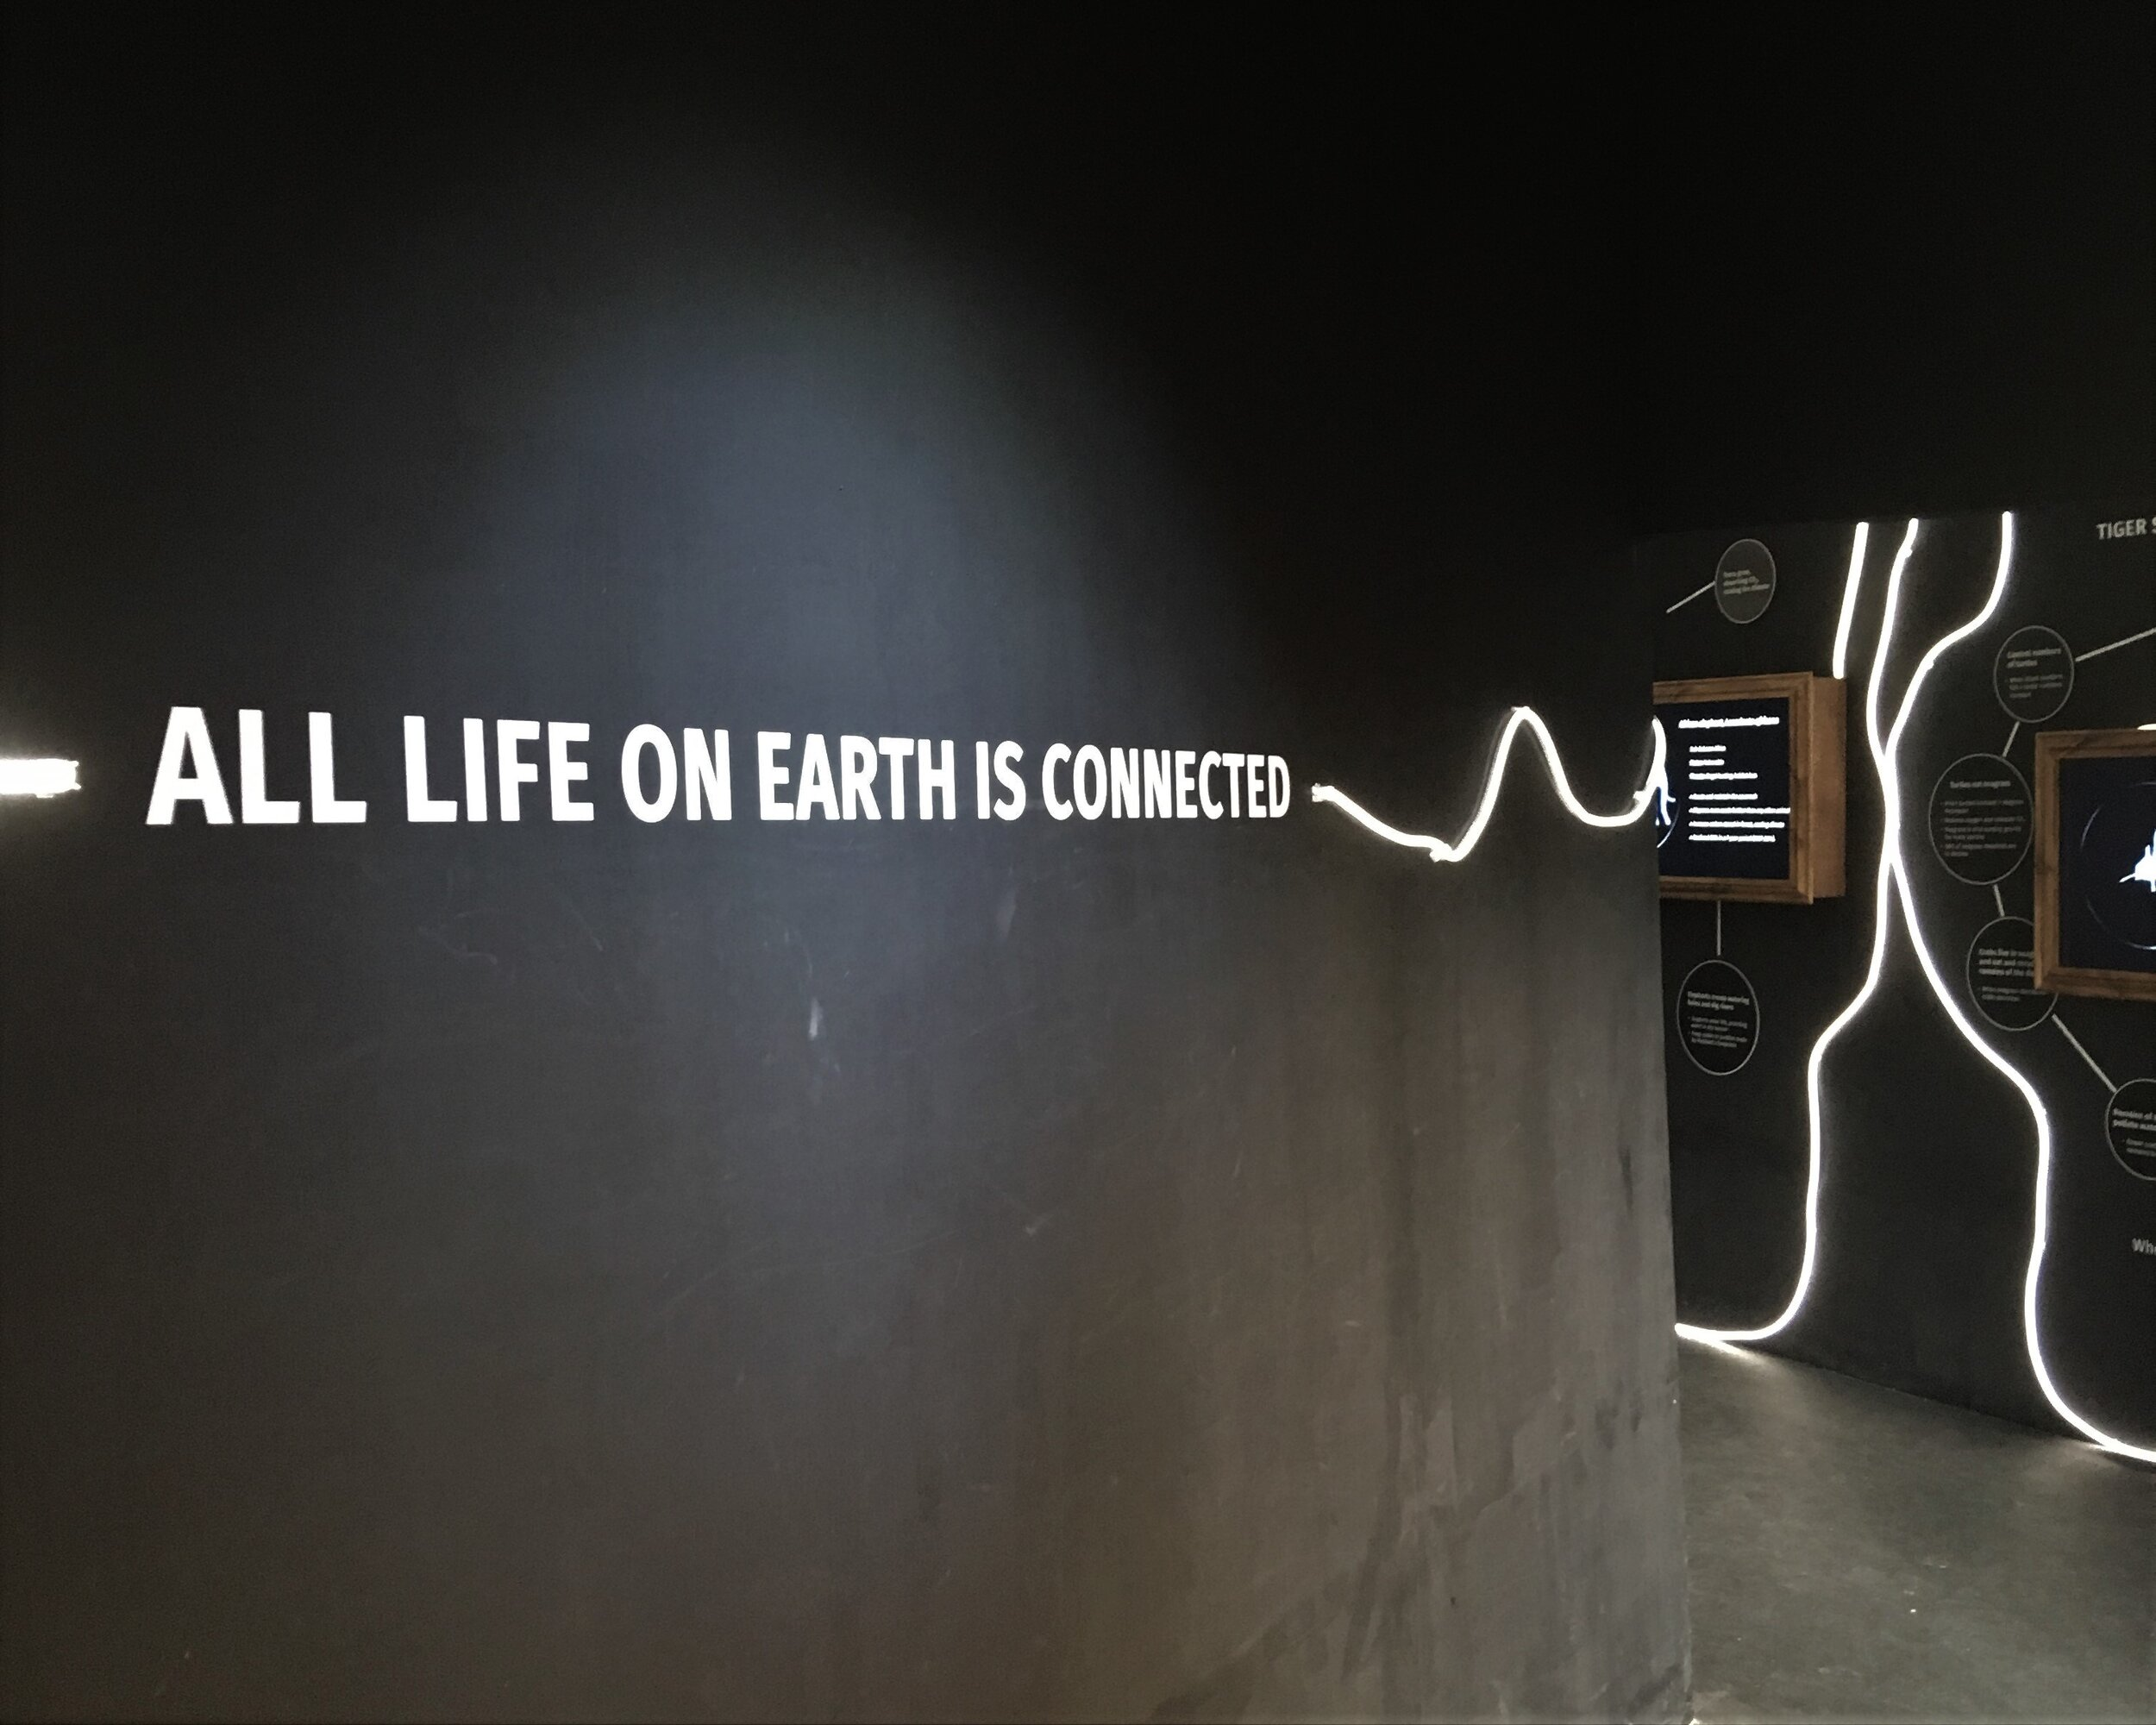 all life on earth is connected.jpg